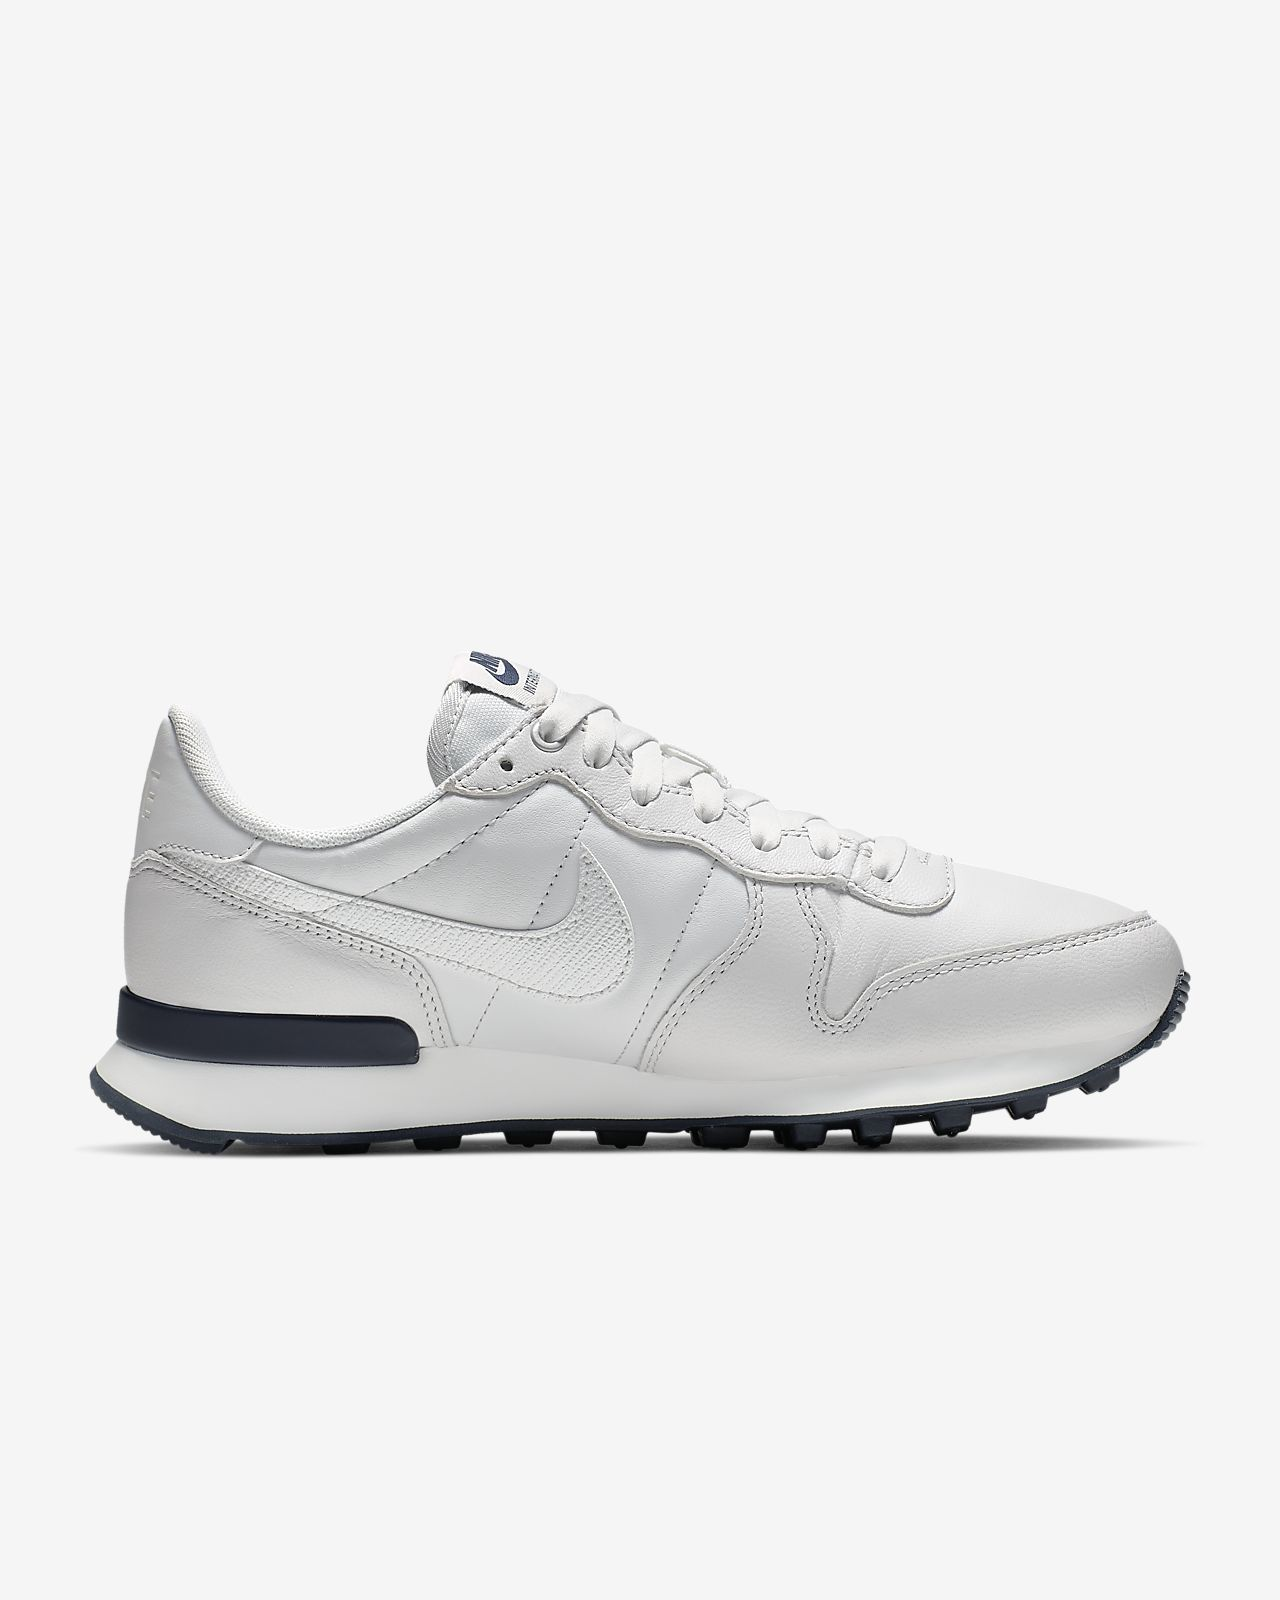 buy online 91253 ac0a4 Low Resolution Chaussure Nike Internationalist Premium pour Femme Chaussure  Nike Internationalist Premium pour Femme